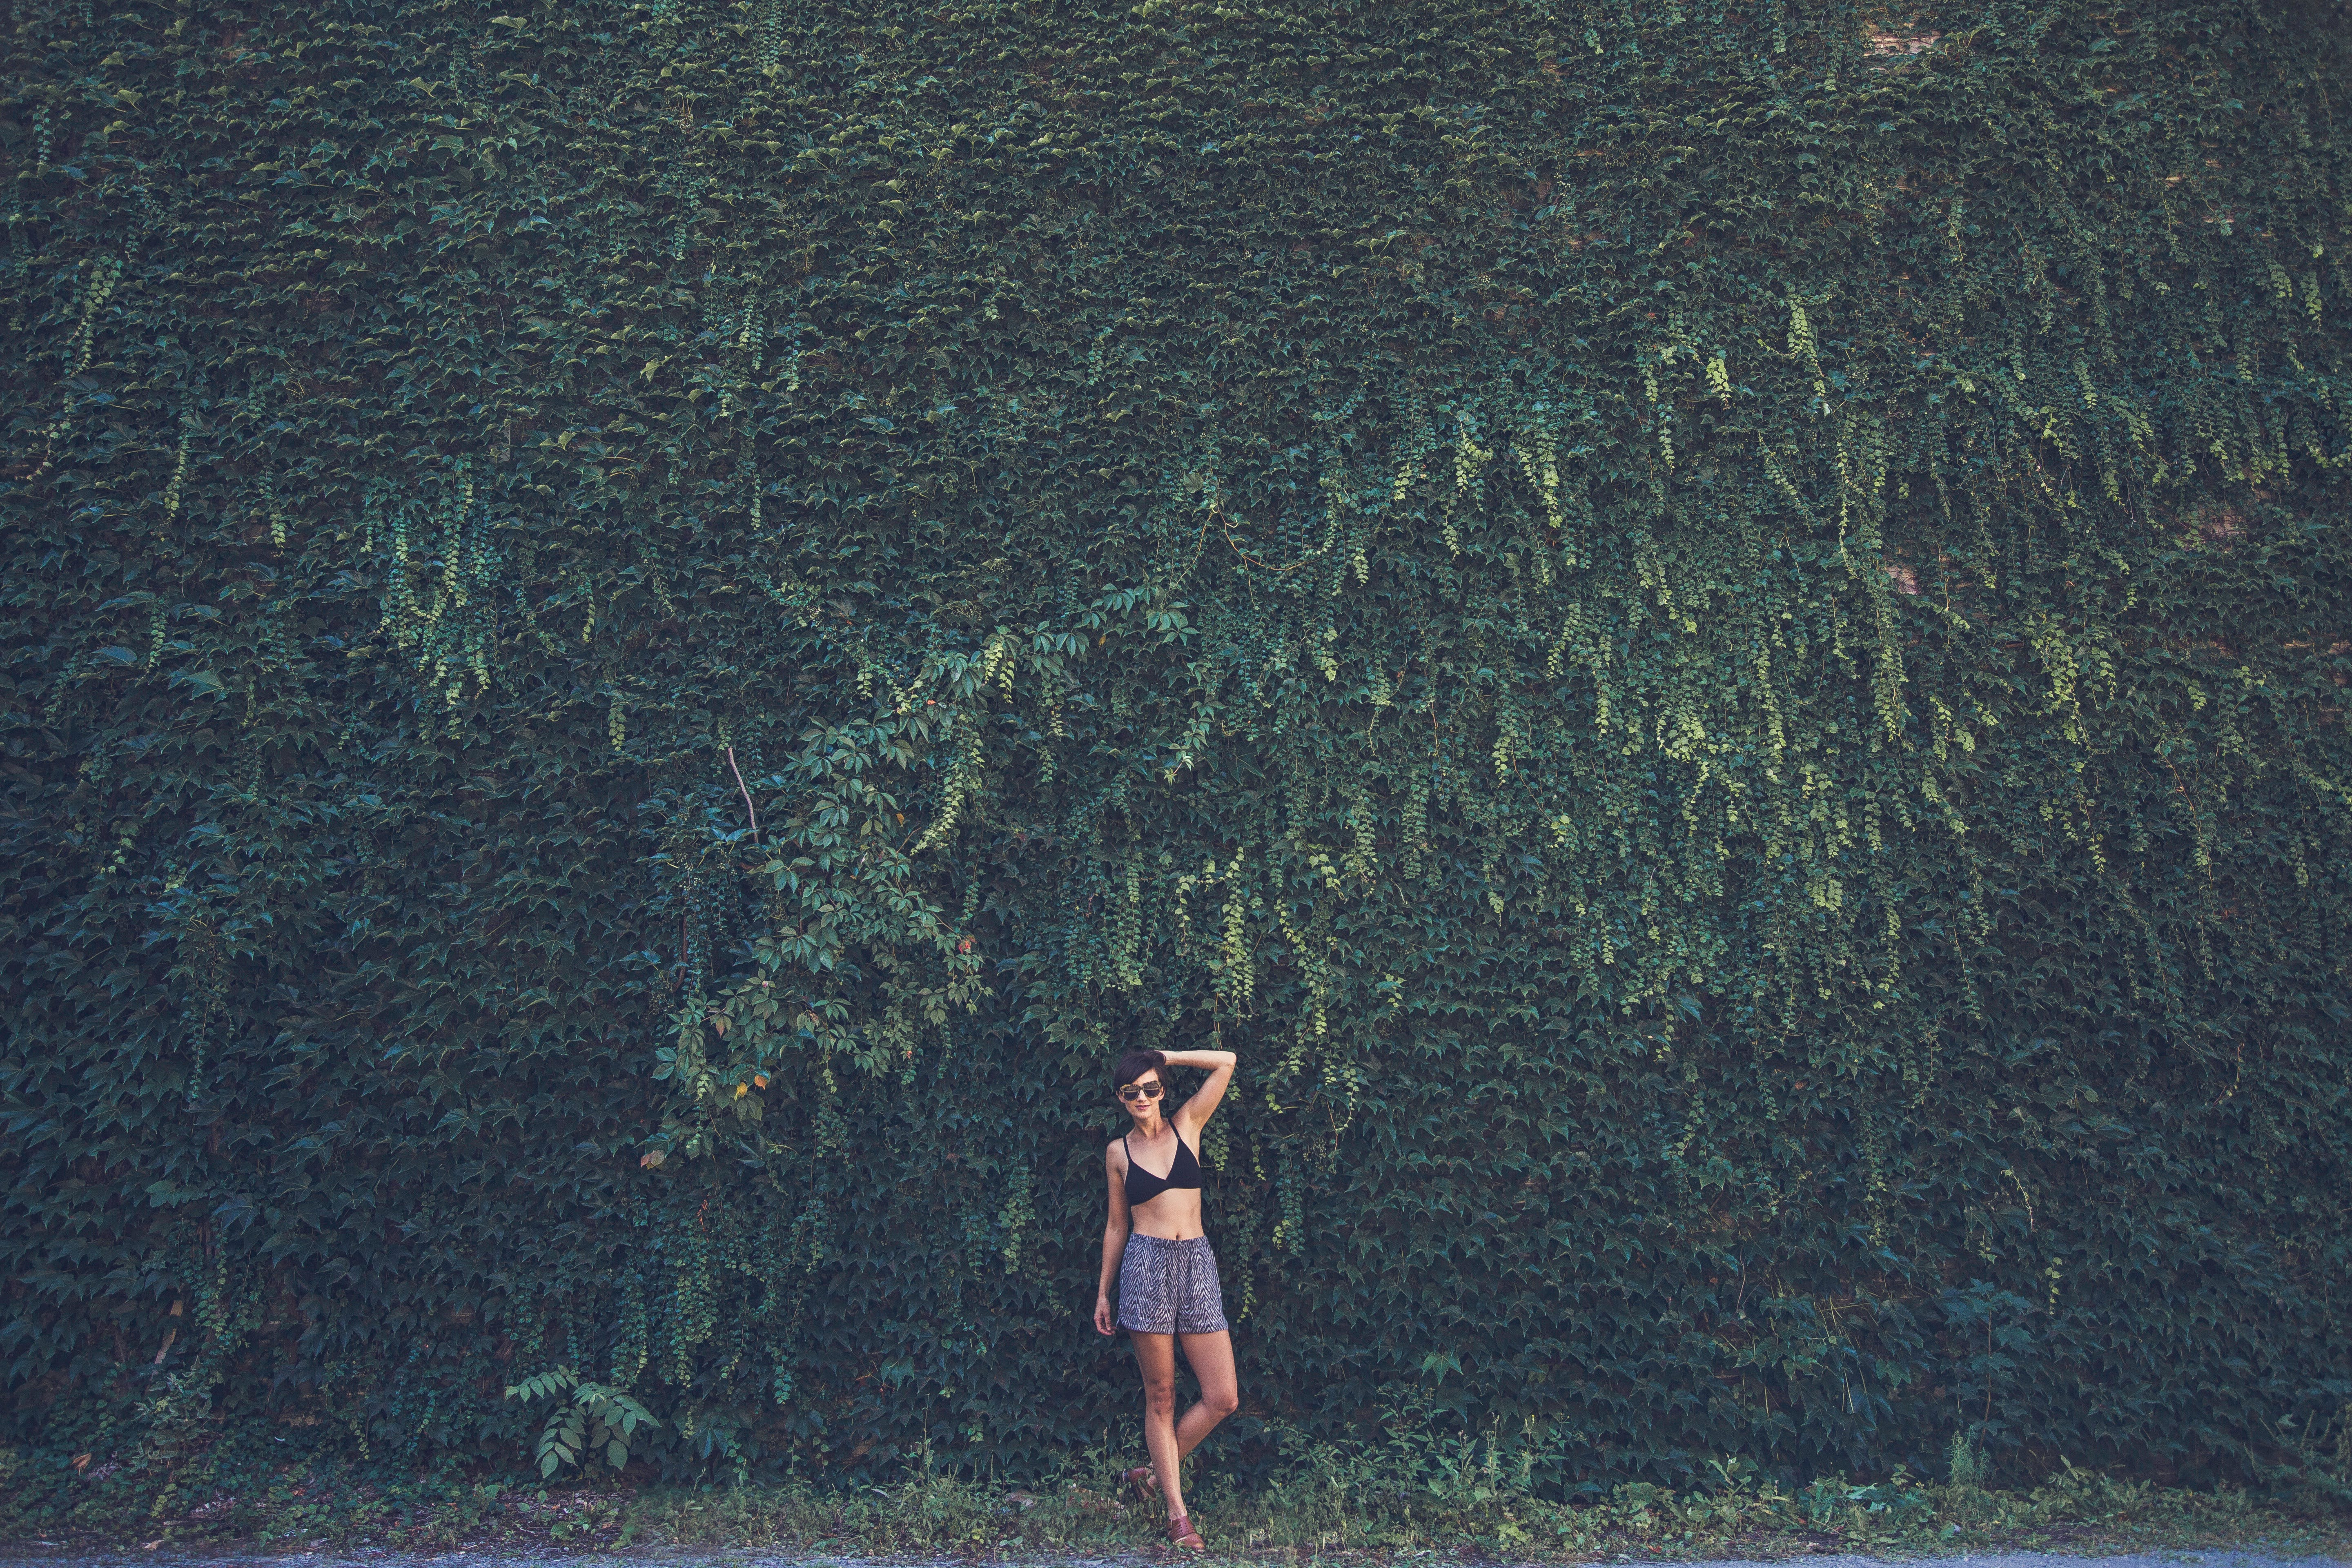 Woman in Black Bikini Top on Green Leafed Plant